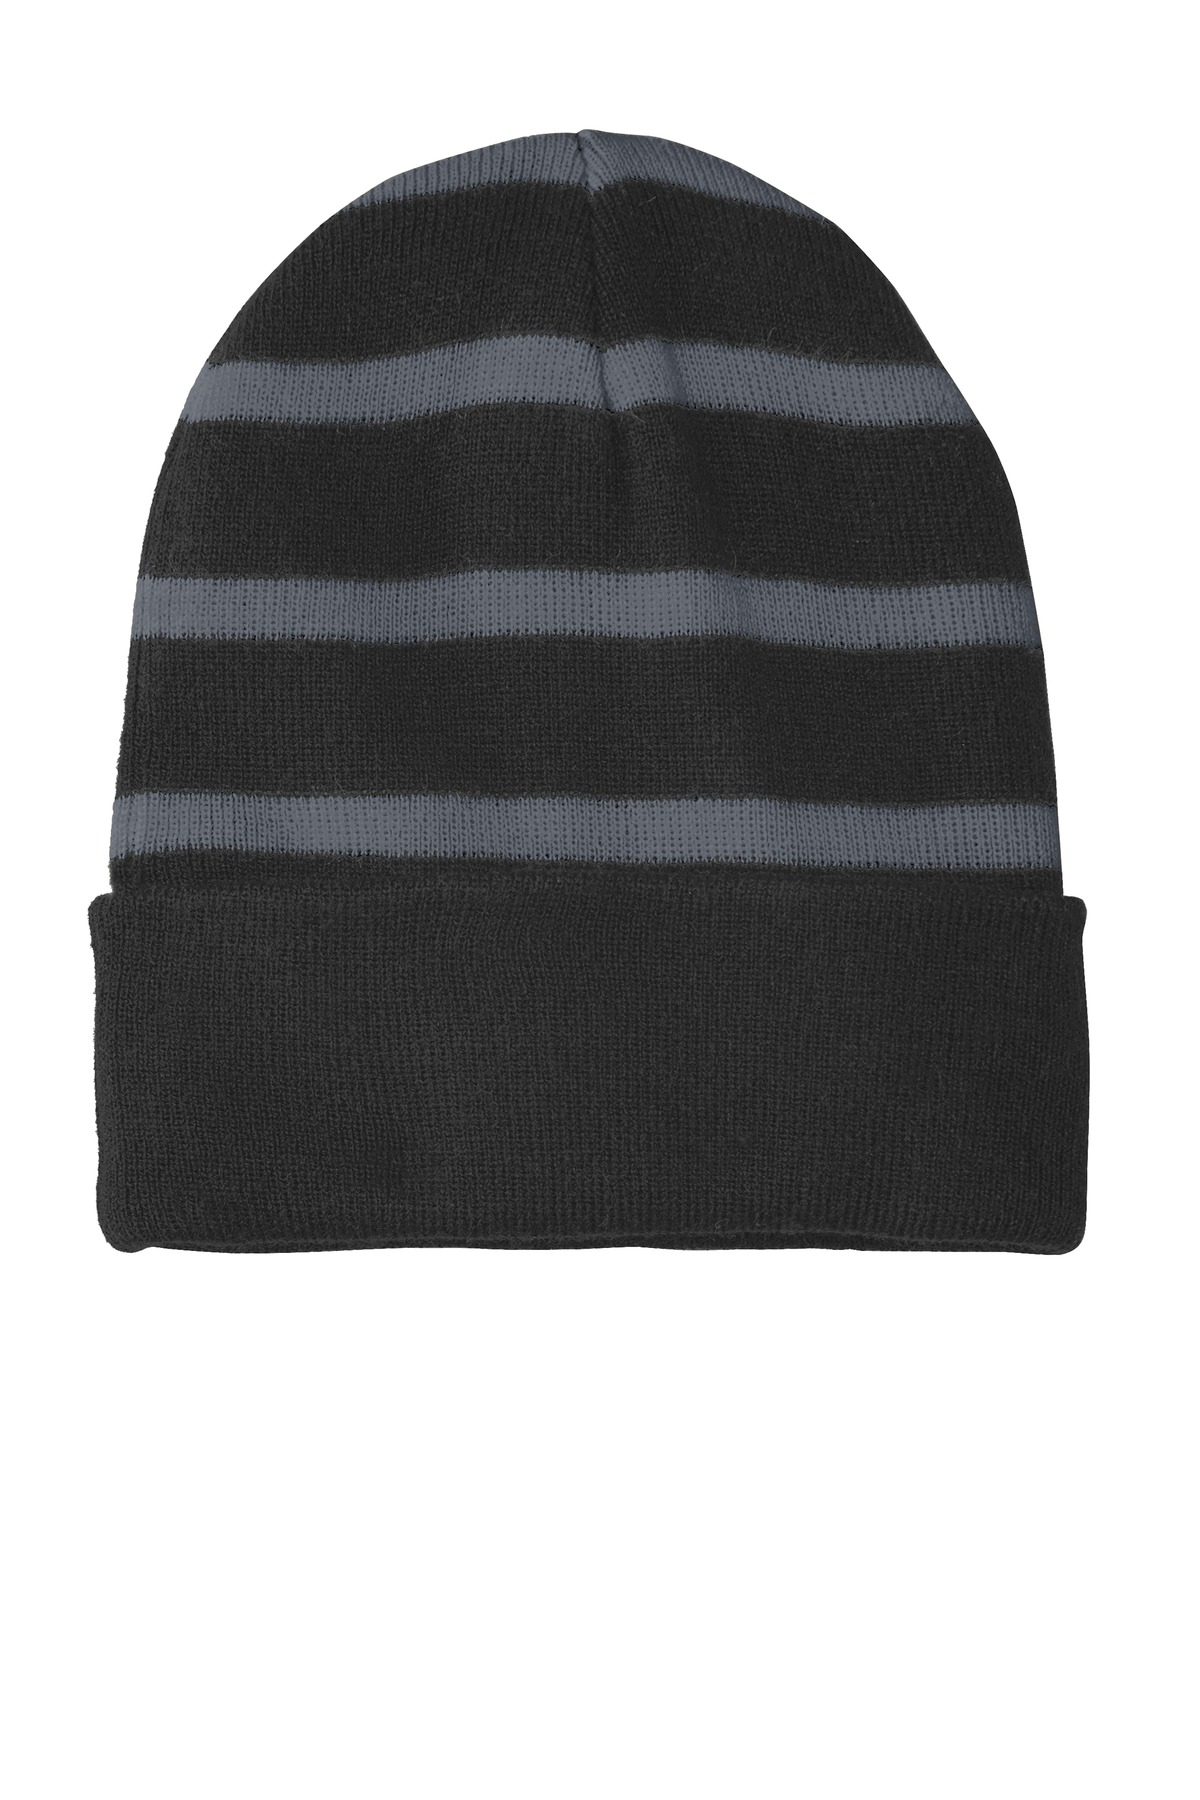 Sport-Tek ®  Striped Beanie with Solid Band. STC31 - Black/ Iron Grey